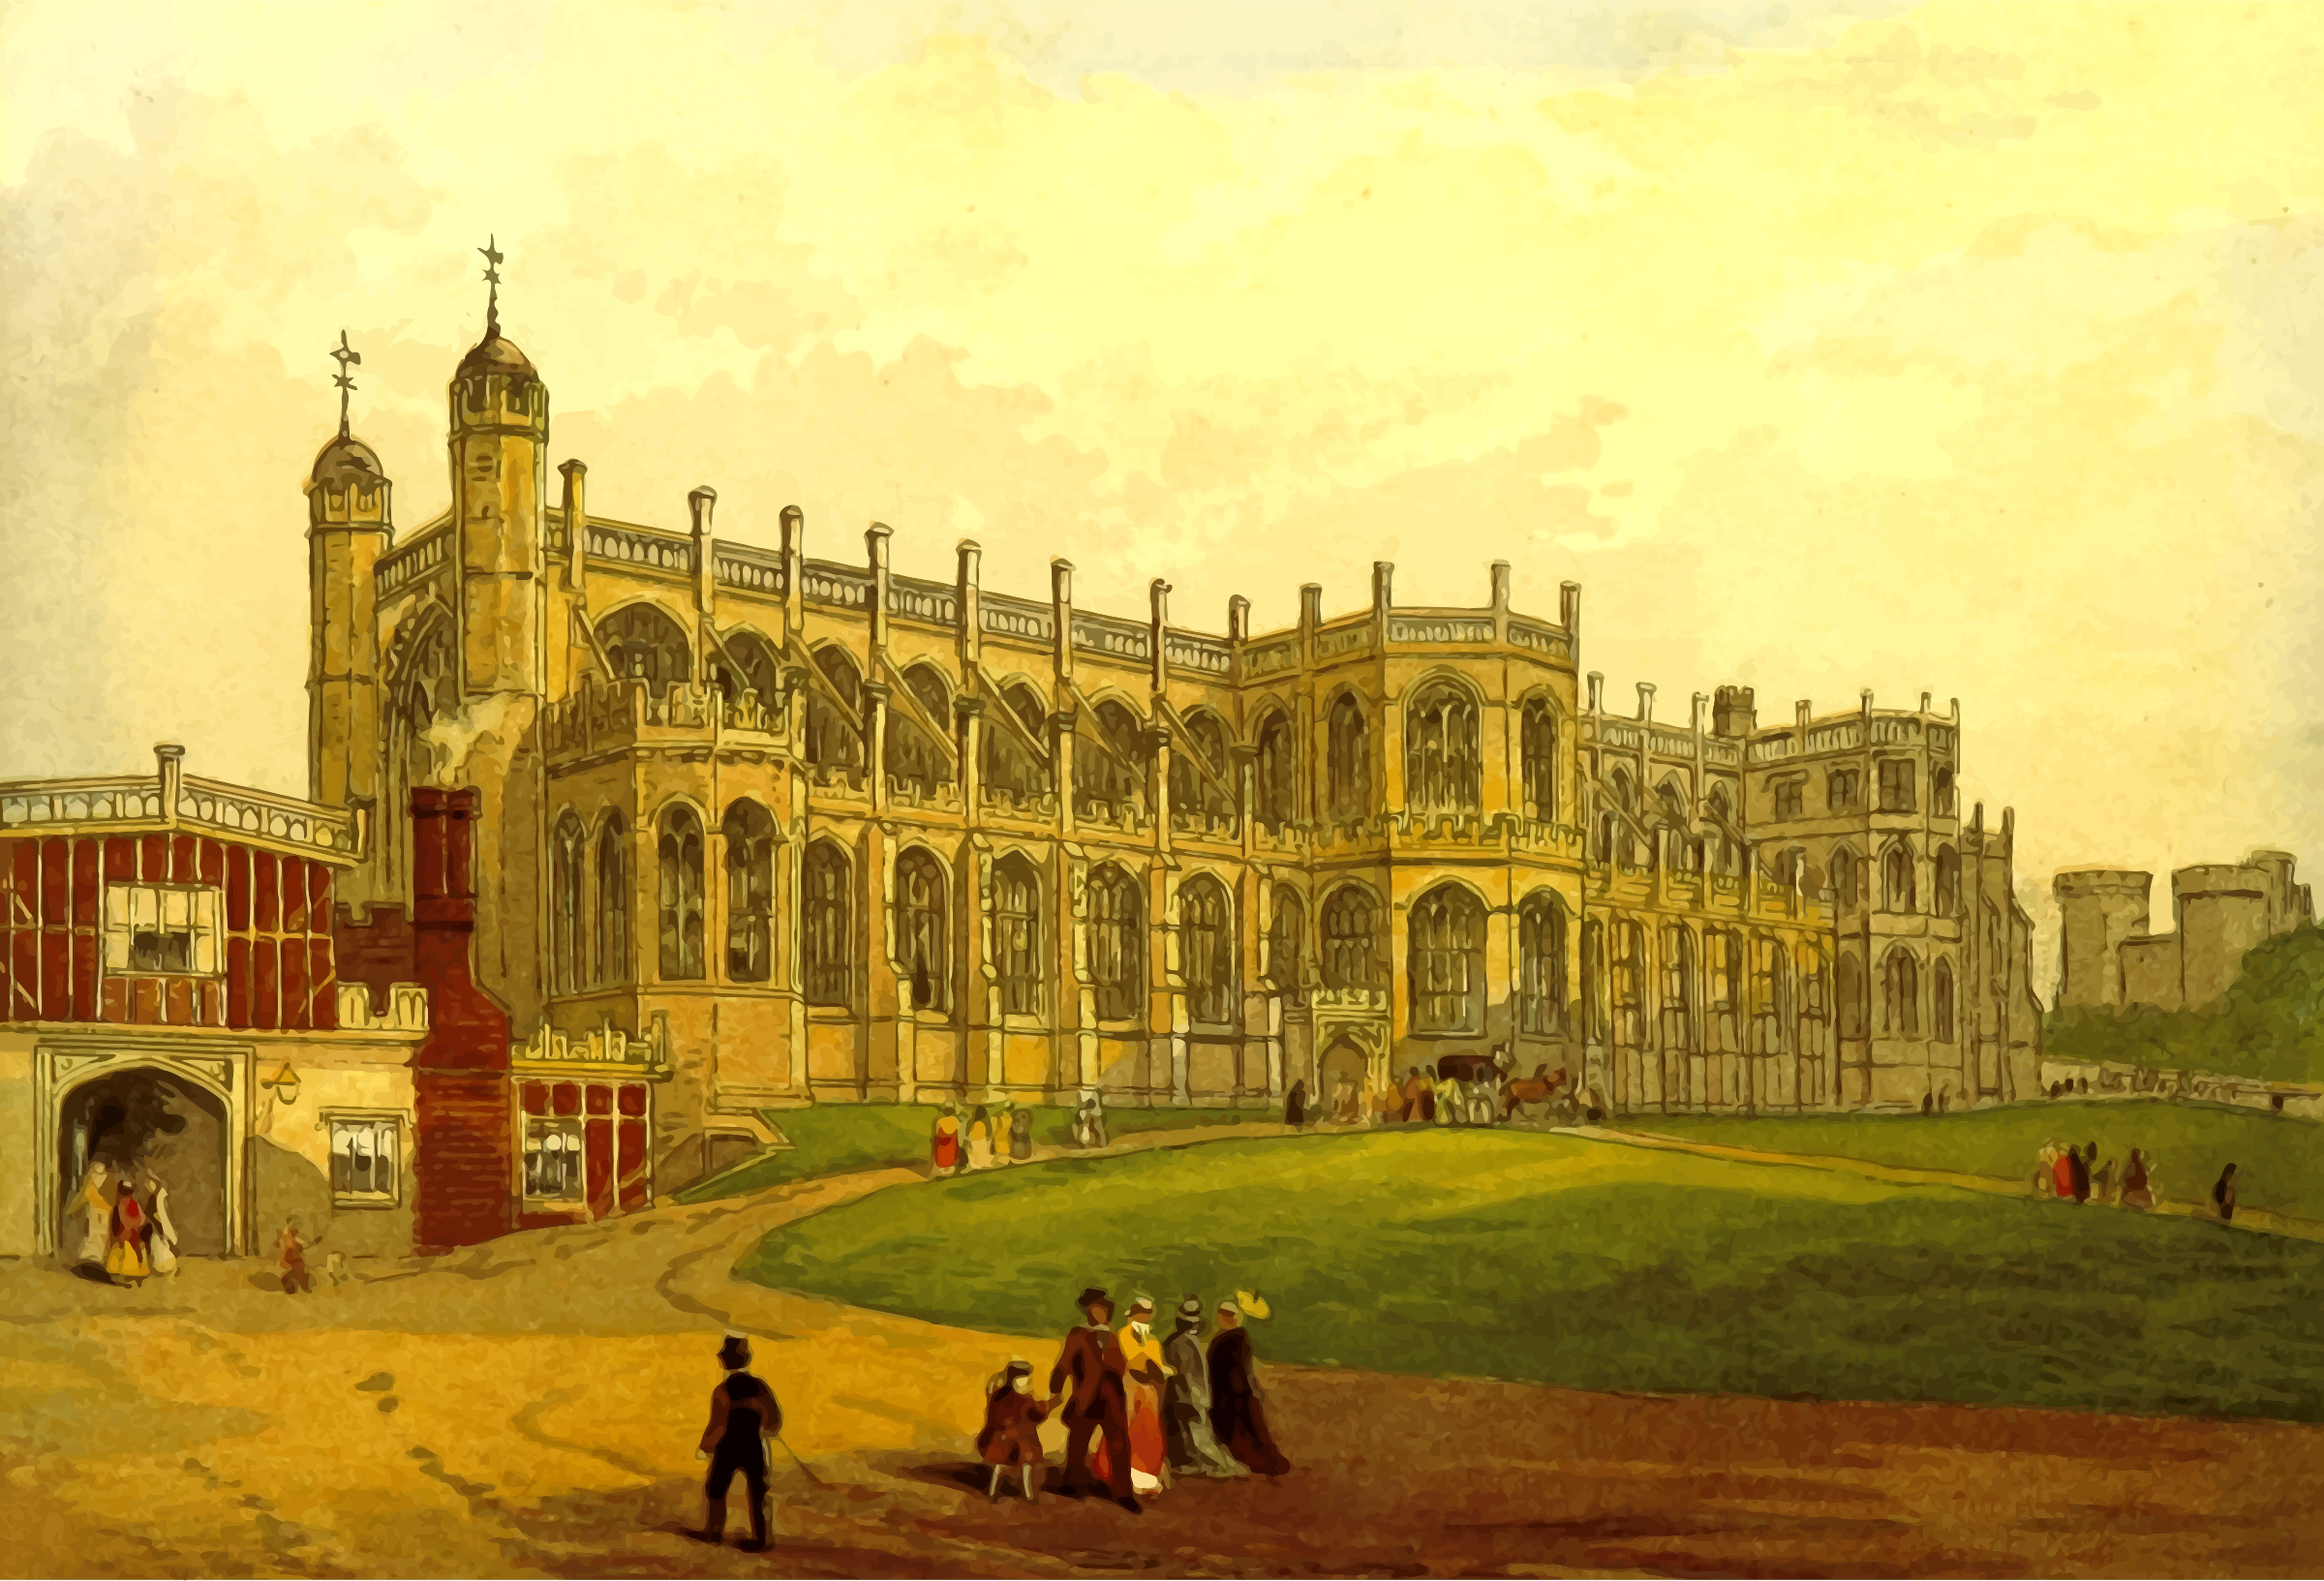 St George's Chapel by Firkin